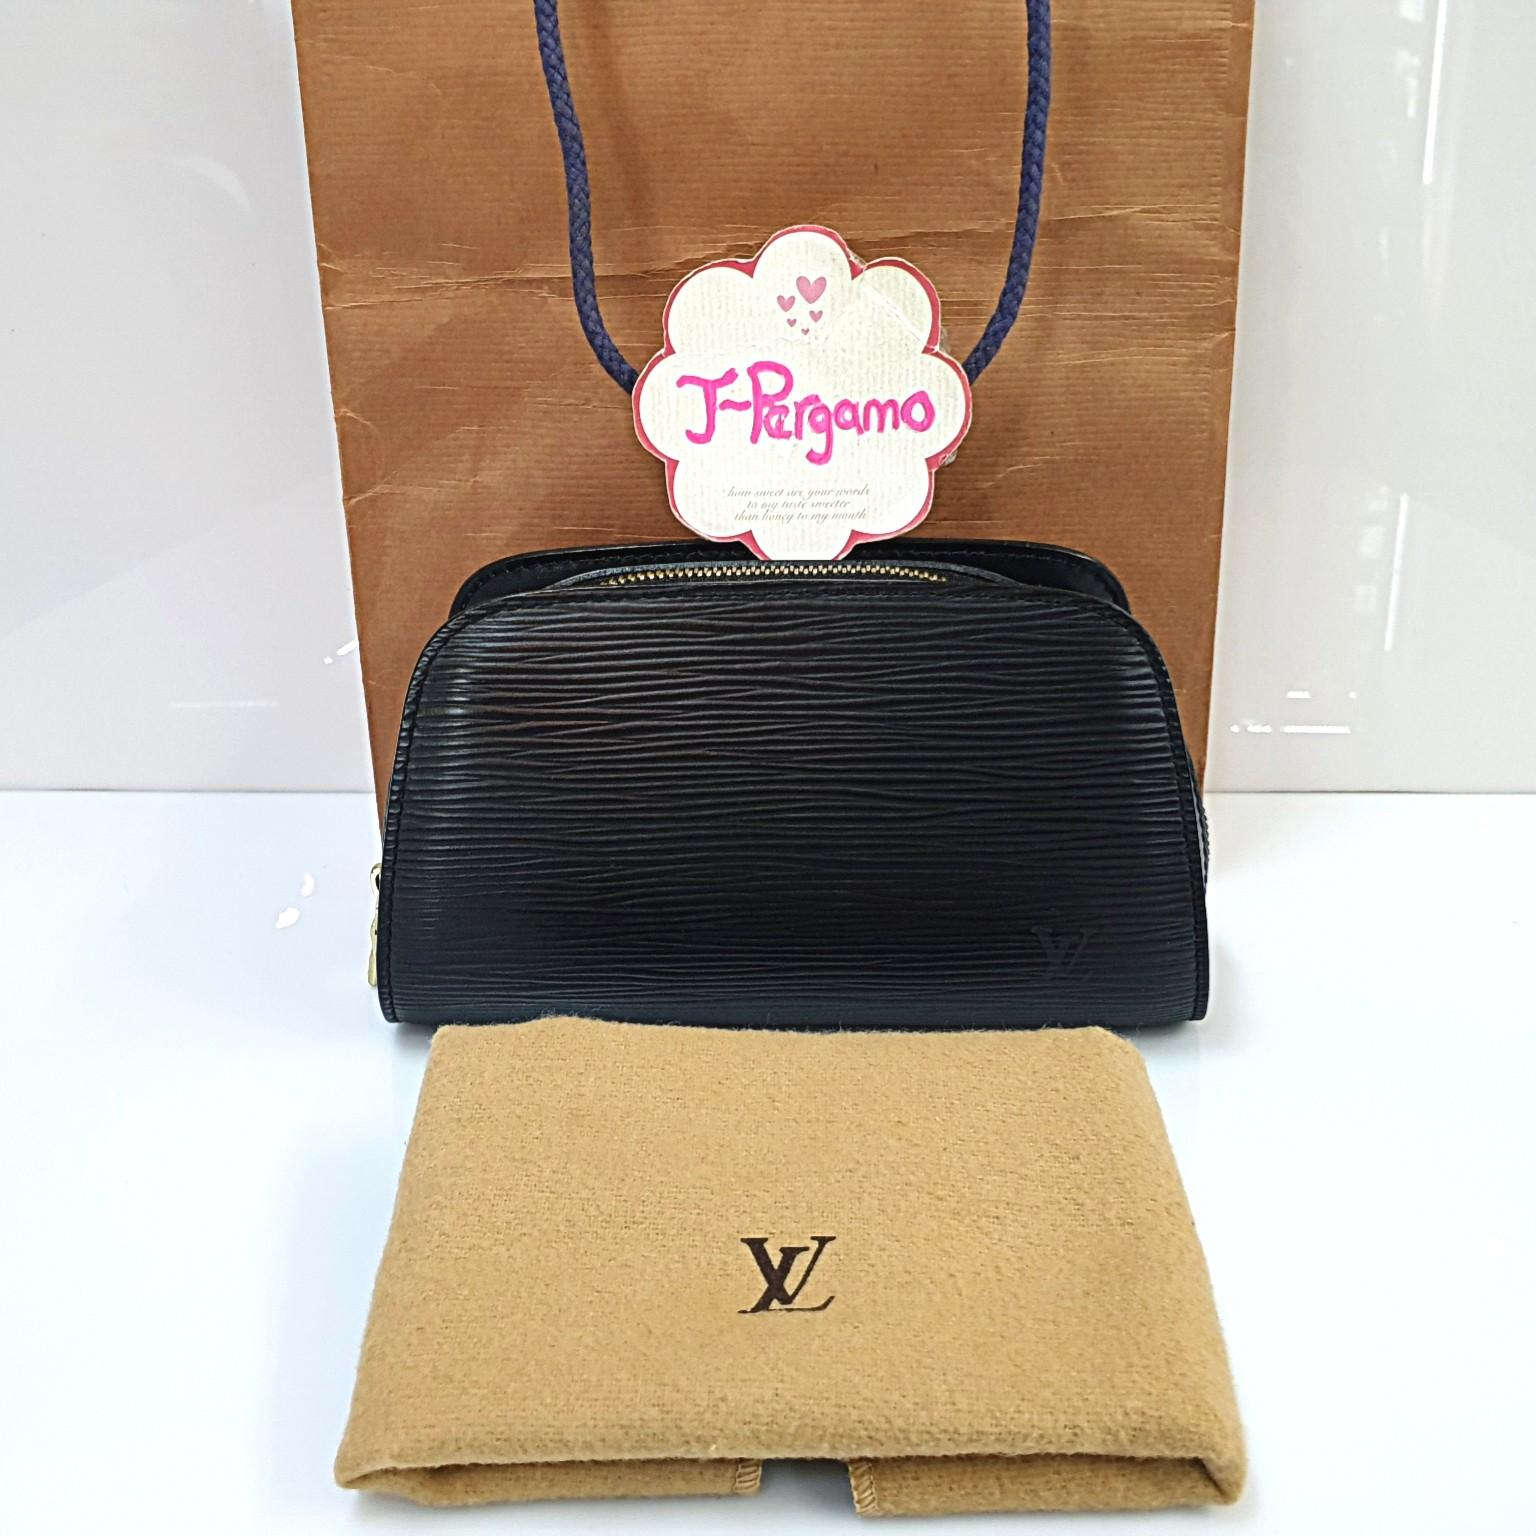 Authentic Louis Vuitton Vintage Epi Leather Dauphine Pouch PM {{Only For Sale}}**No Trade** {{Fixed Price}}**定价**